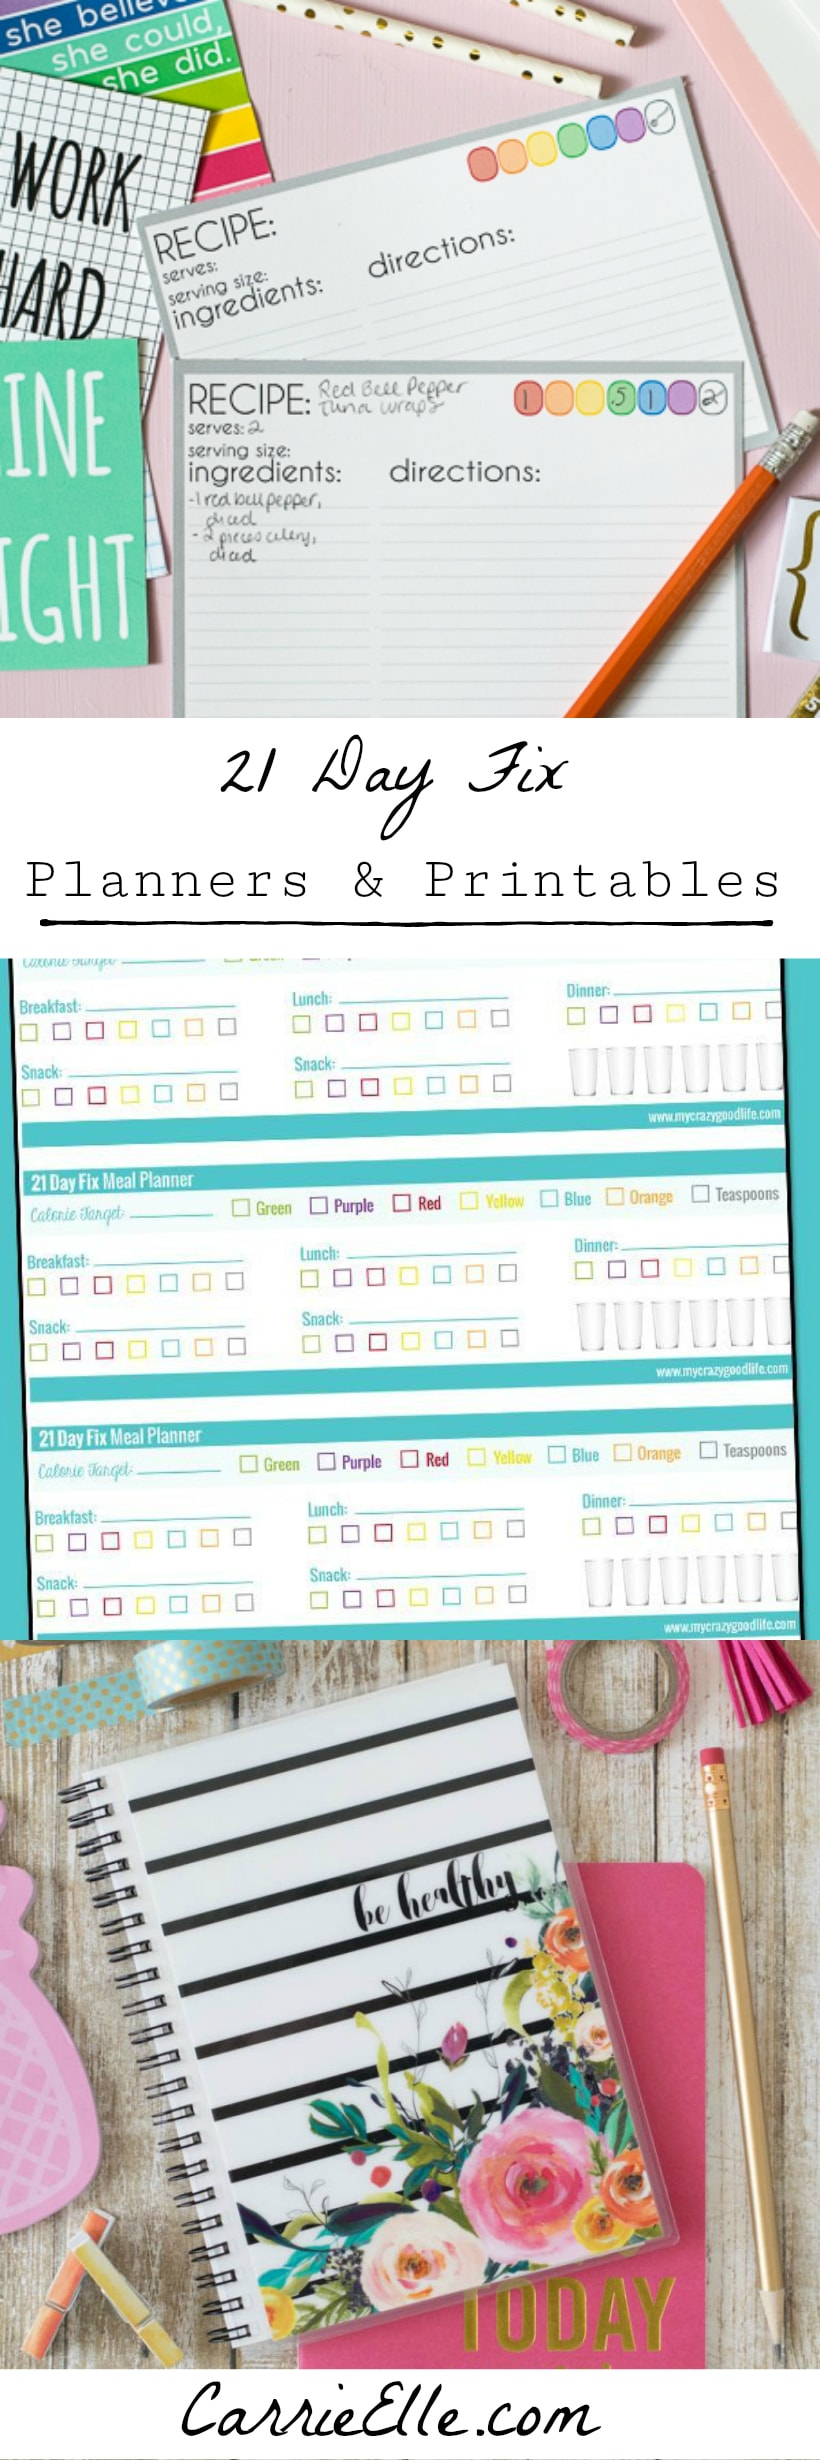 21 day fix planners printables